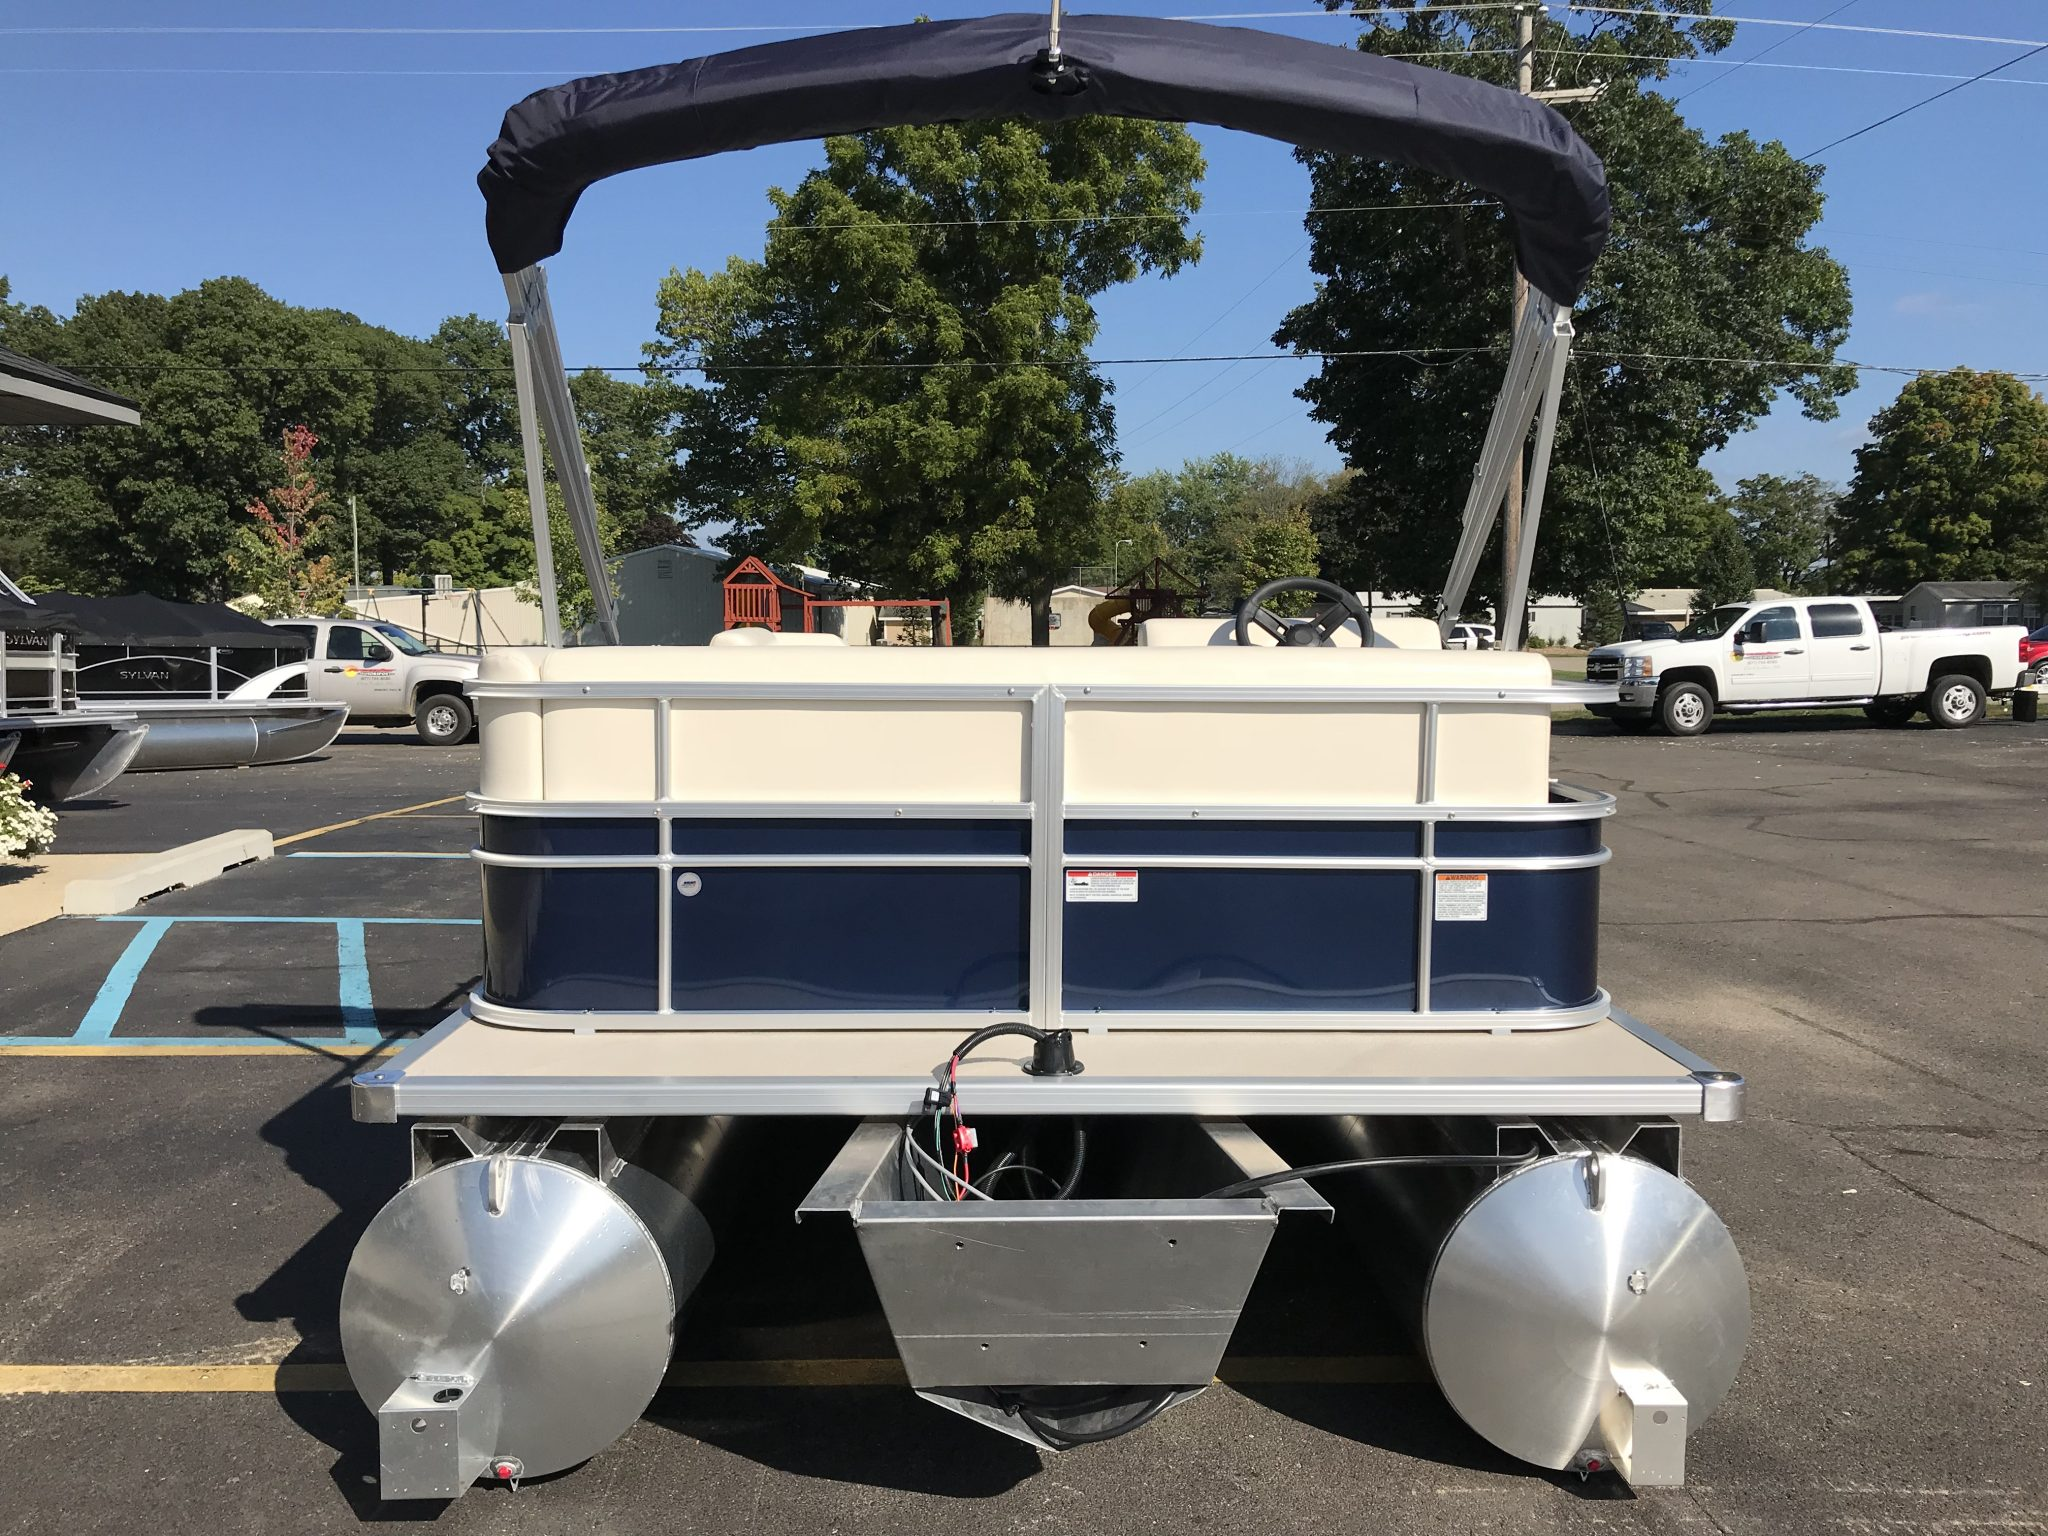 2019 SunChaser 816 Cruise Blue 6